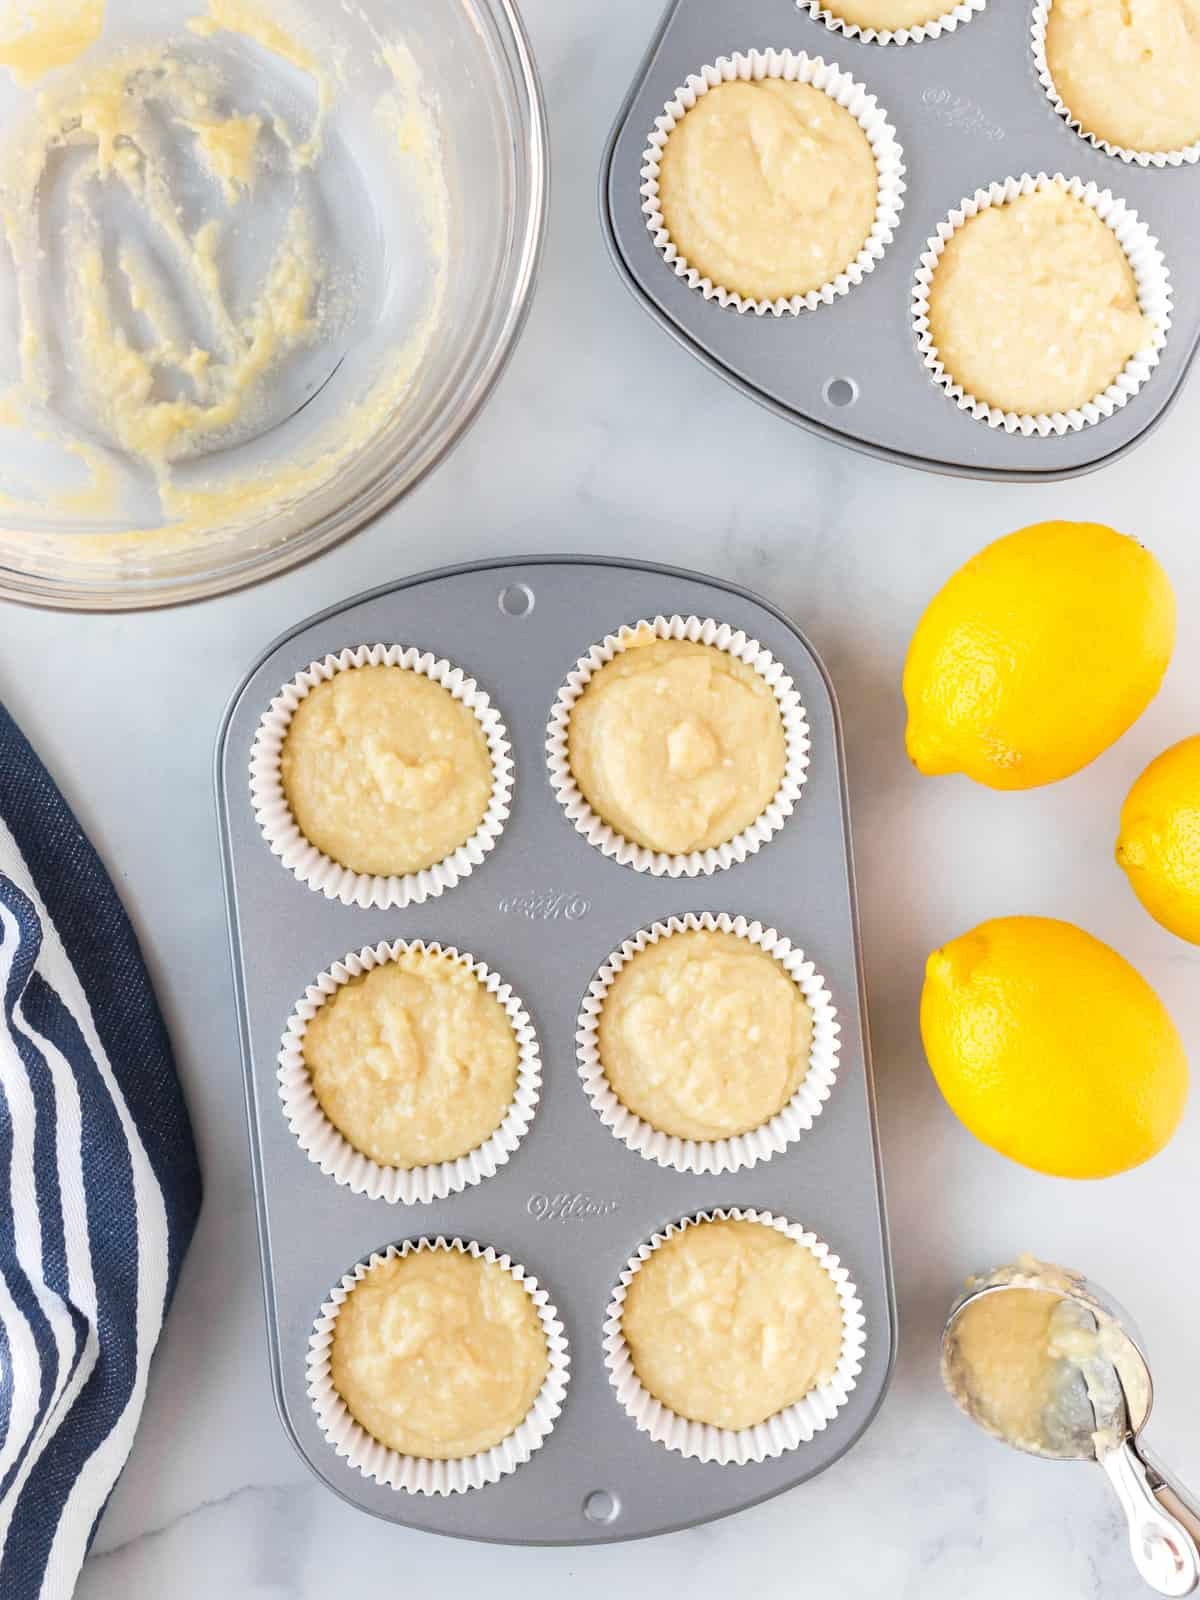 Muffin batter in muffin pans with lemons.